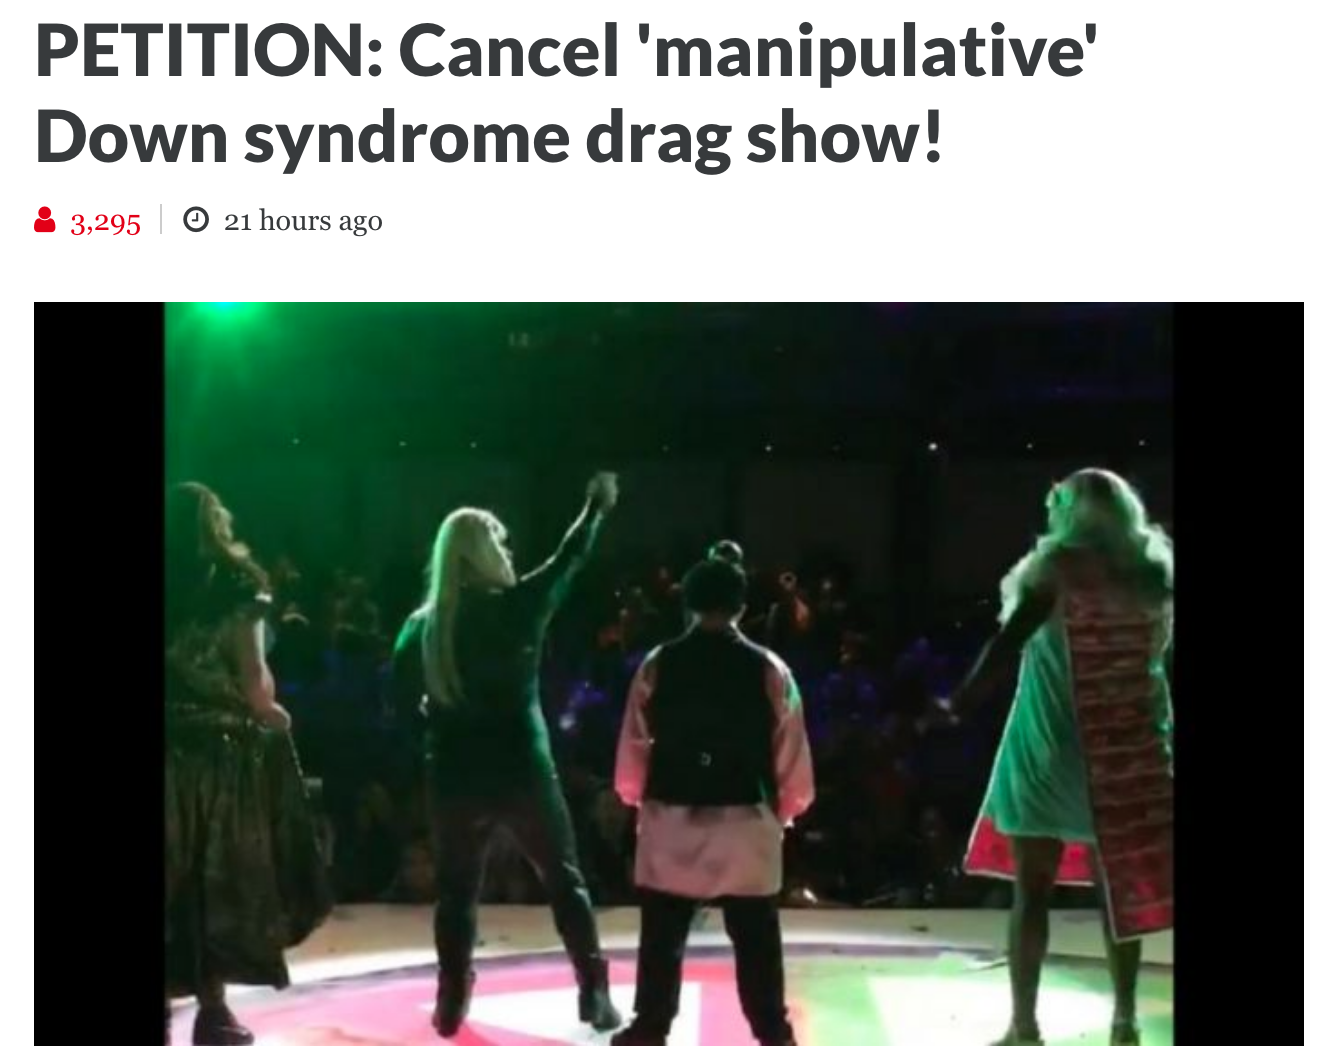 Stop Drag show with people with Down syndrom